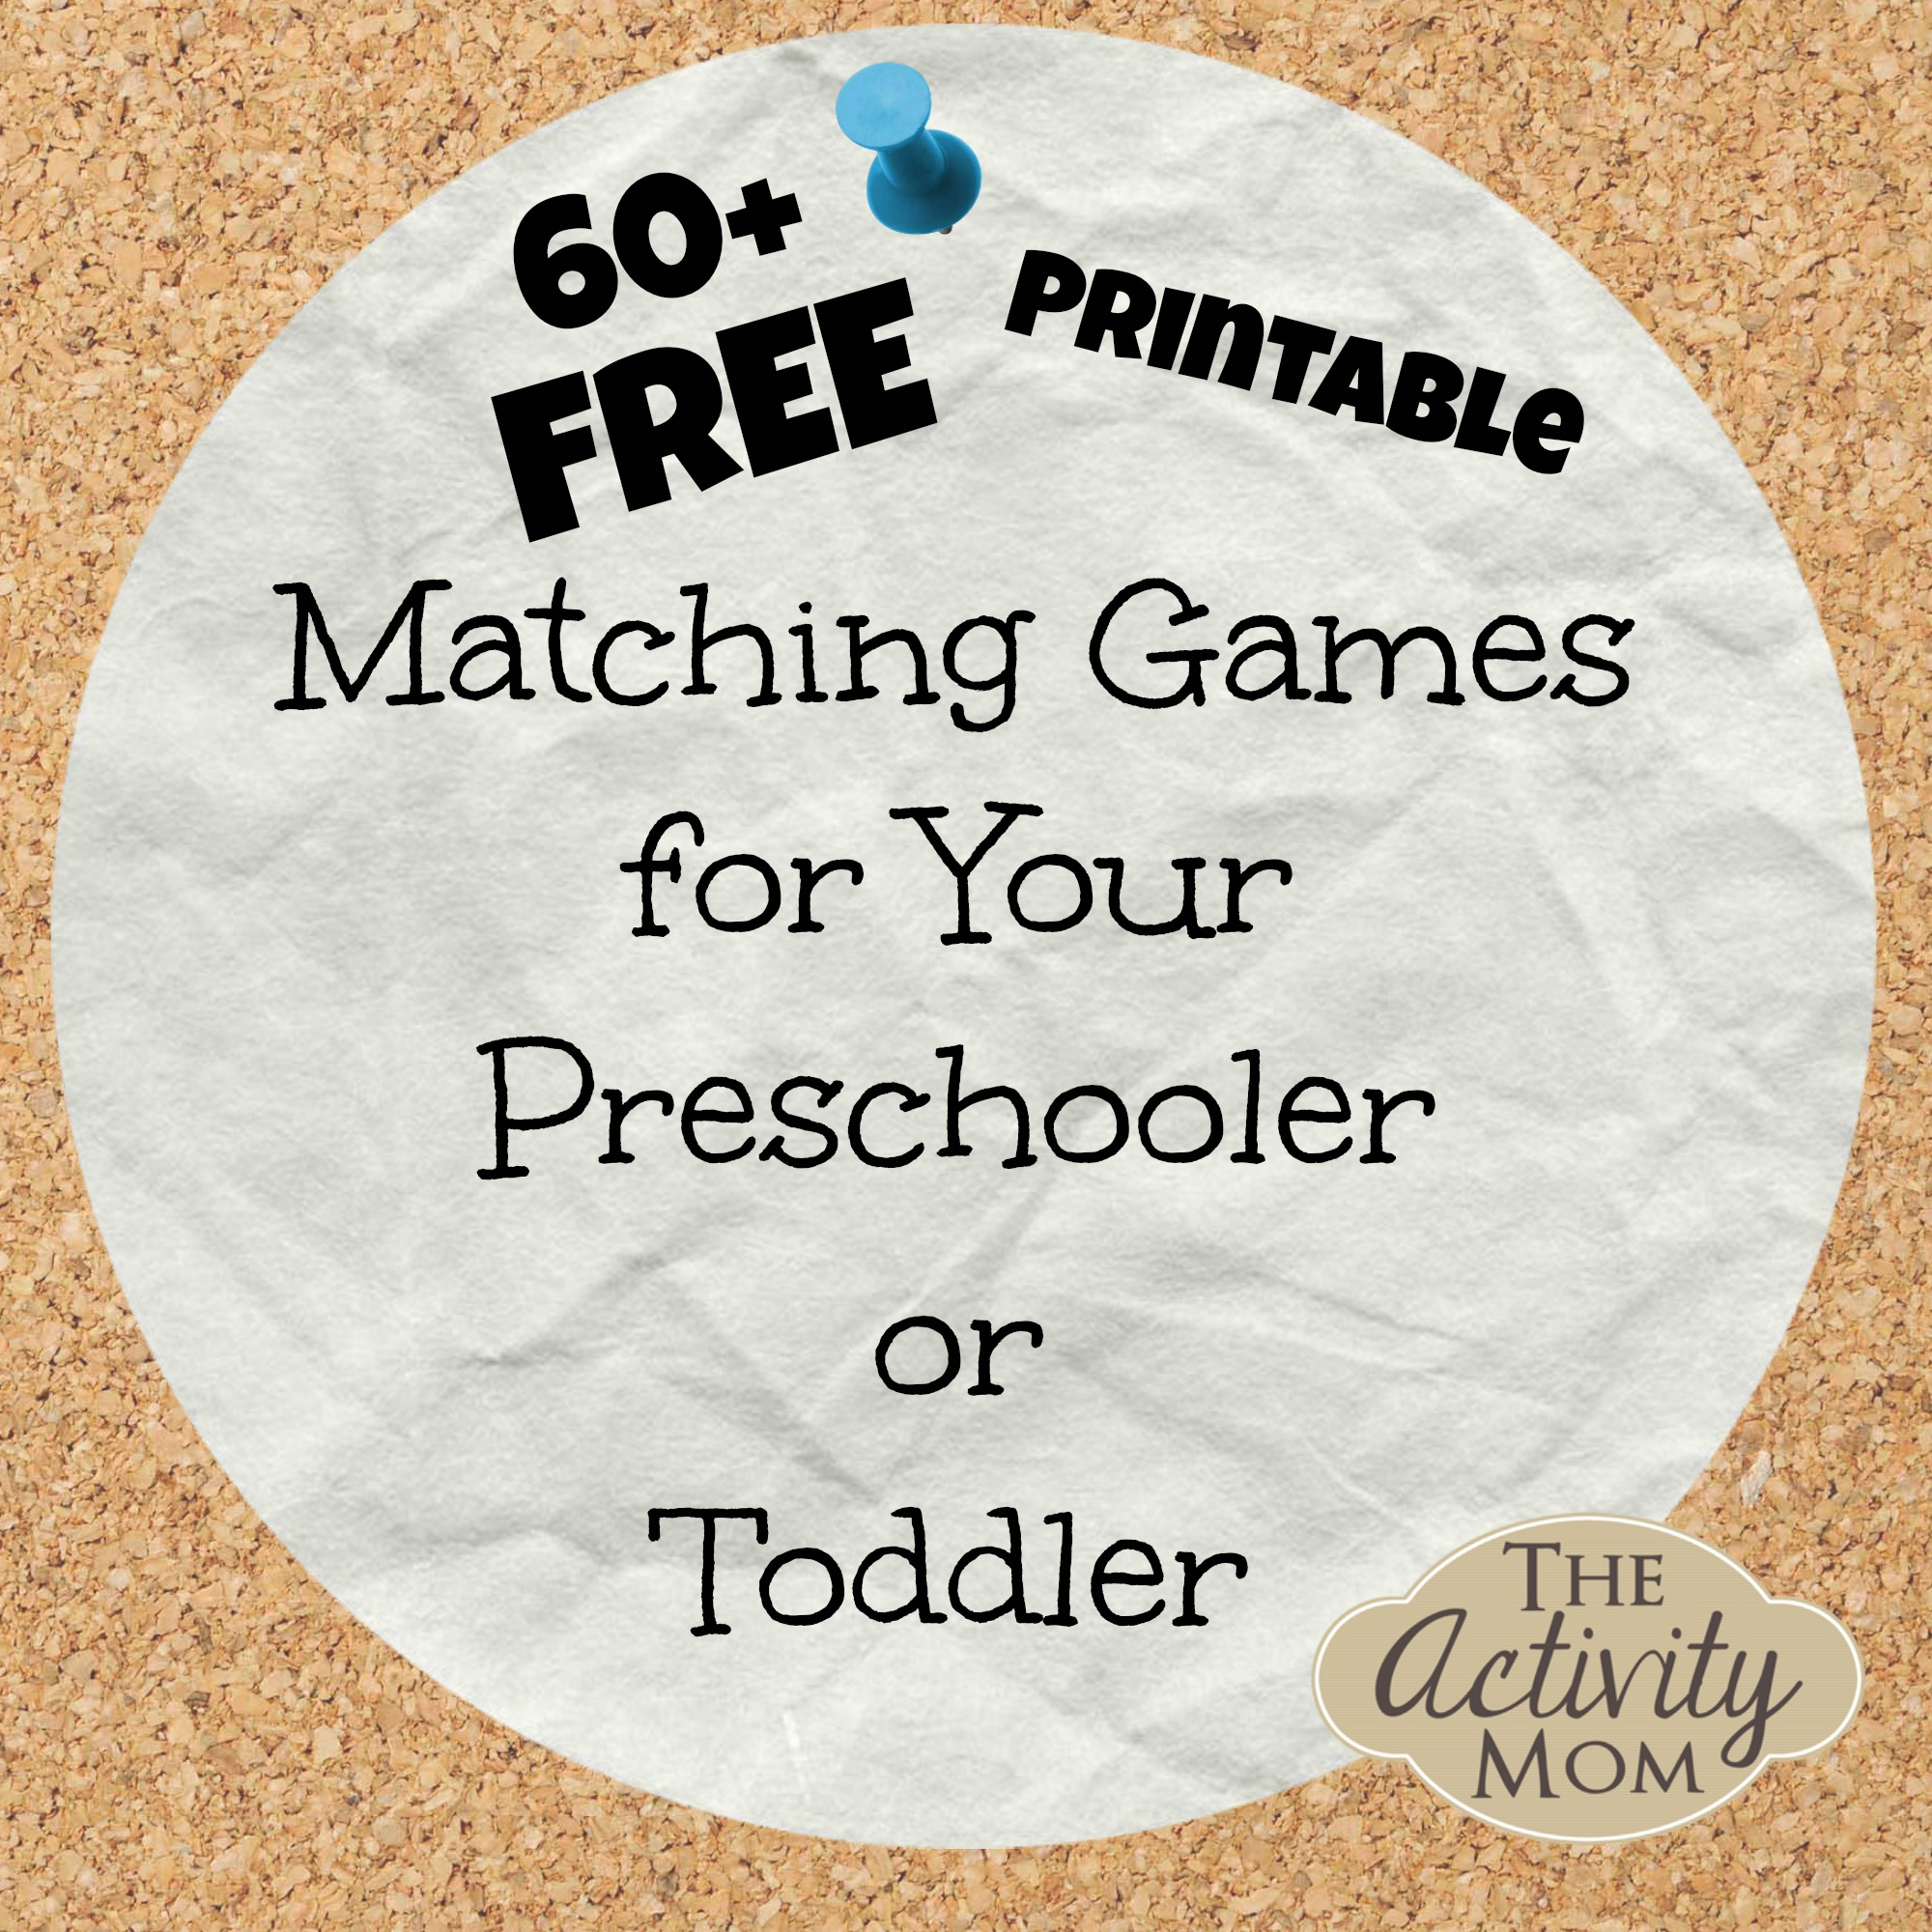 Printable color matching games for preschoolers - Free printable matching games for preschoolers and toddlers